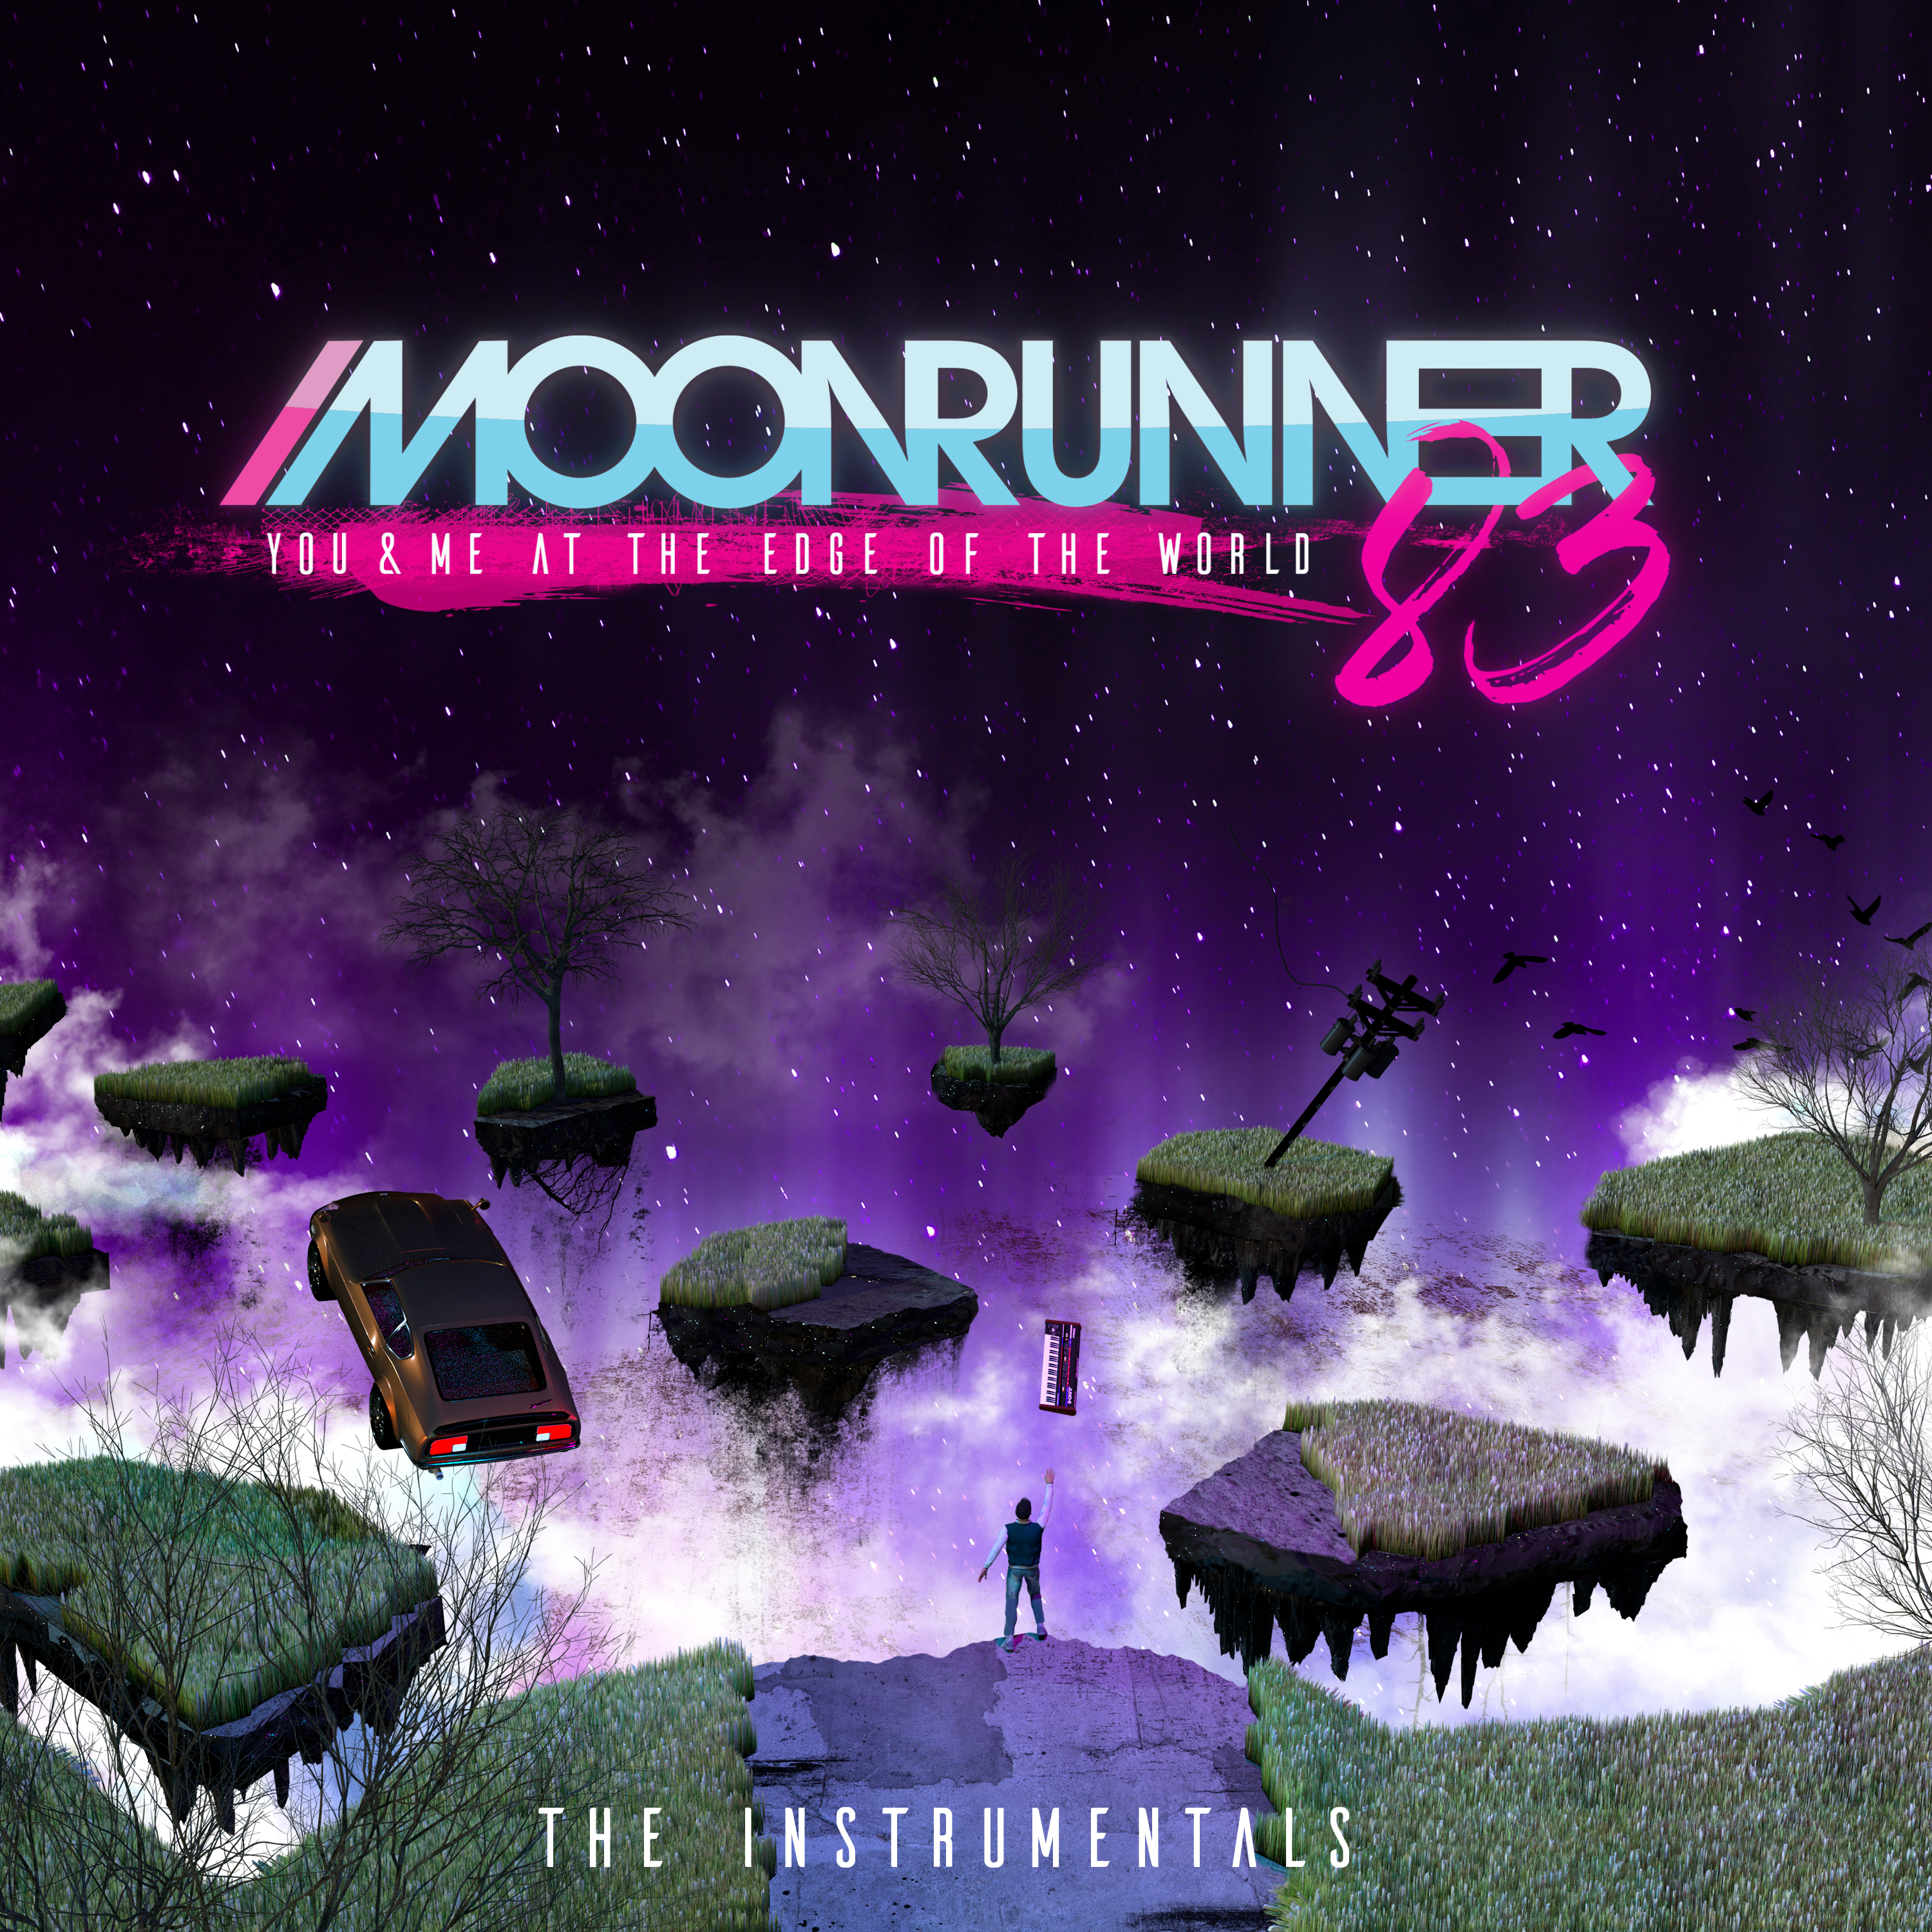 Moonrunner83 - You & Me At The Edge Of The World (The Instrumentals) Image